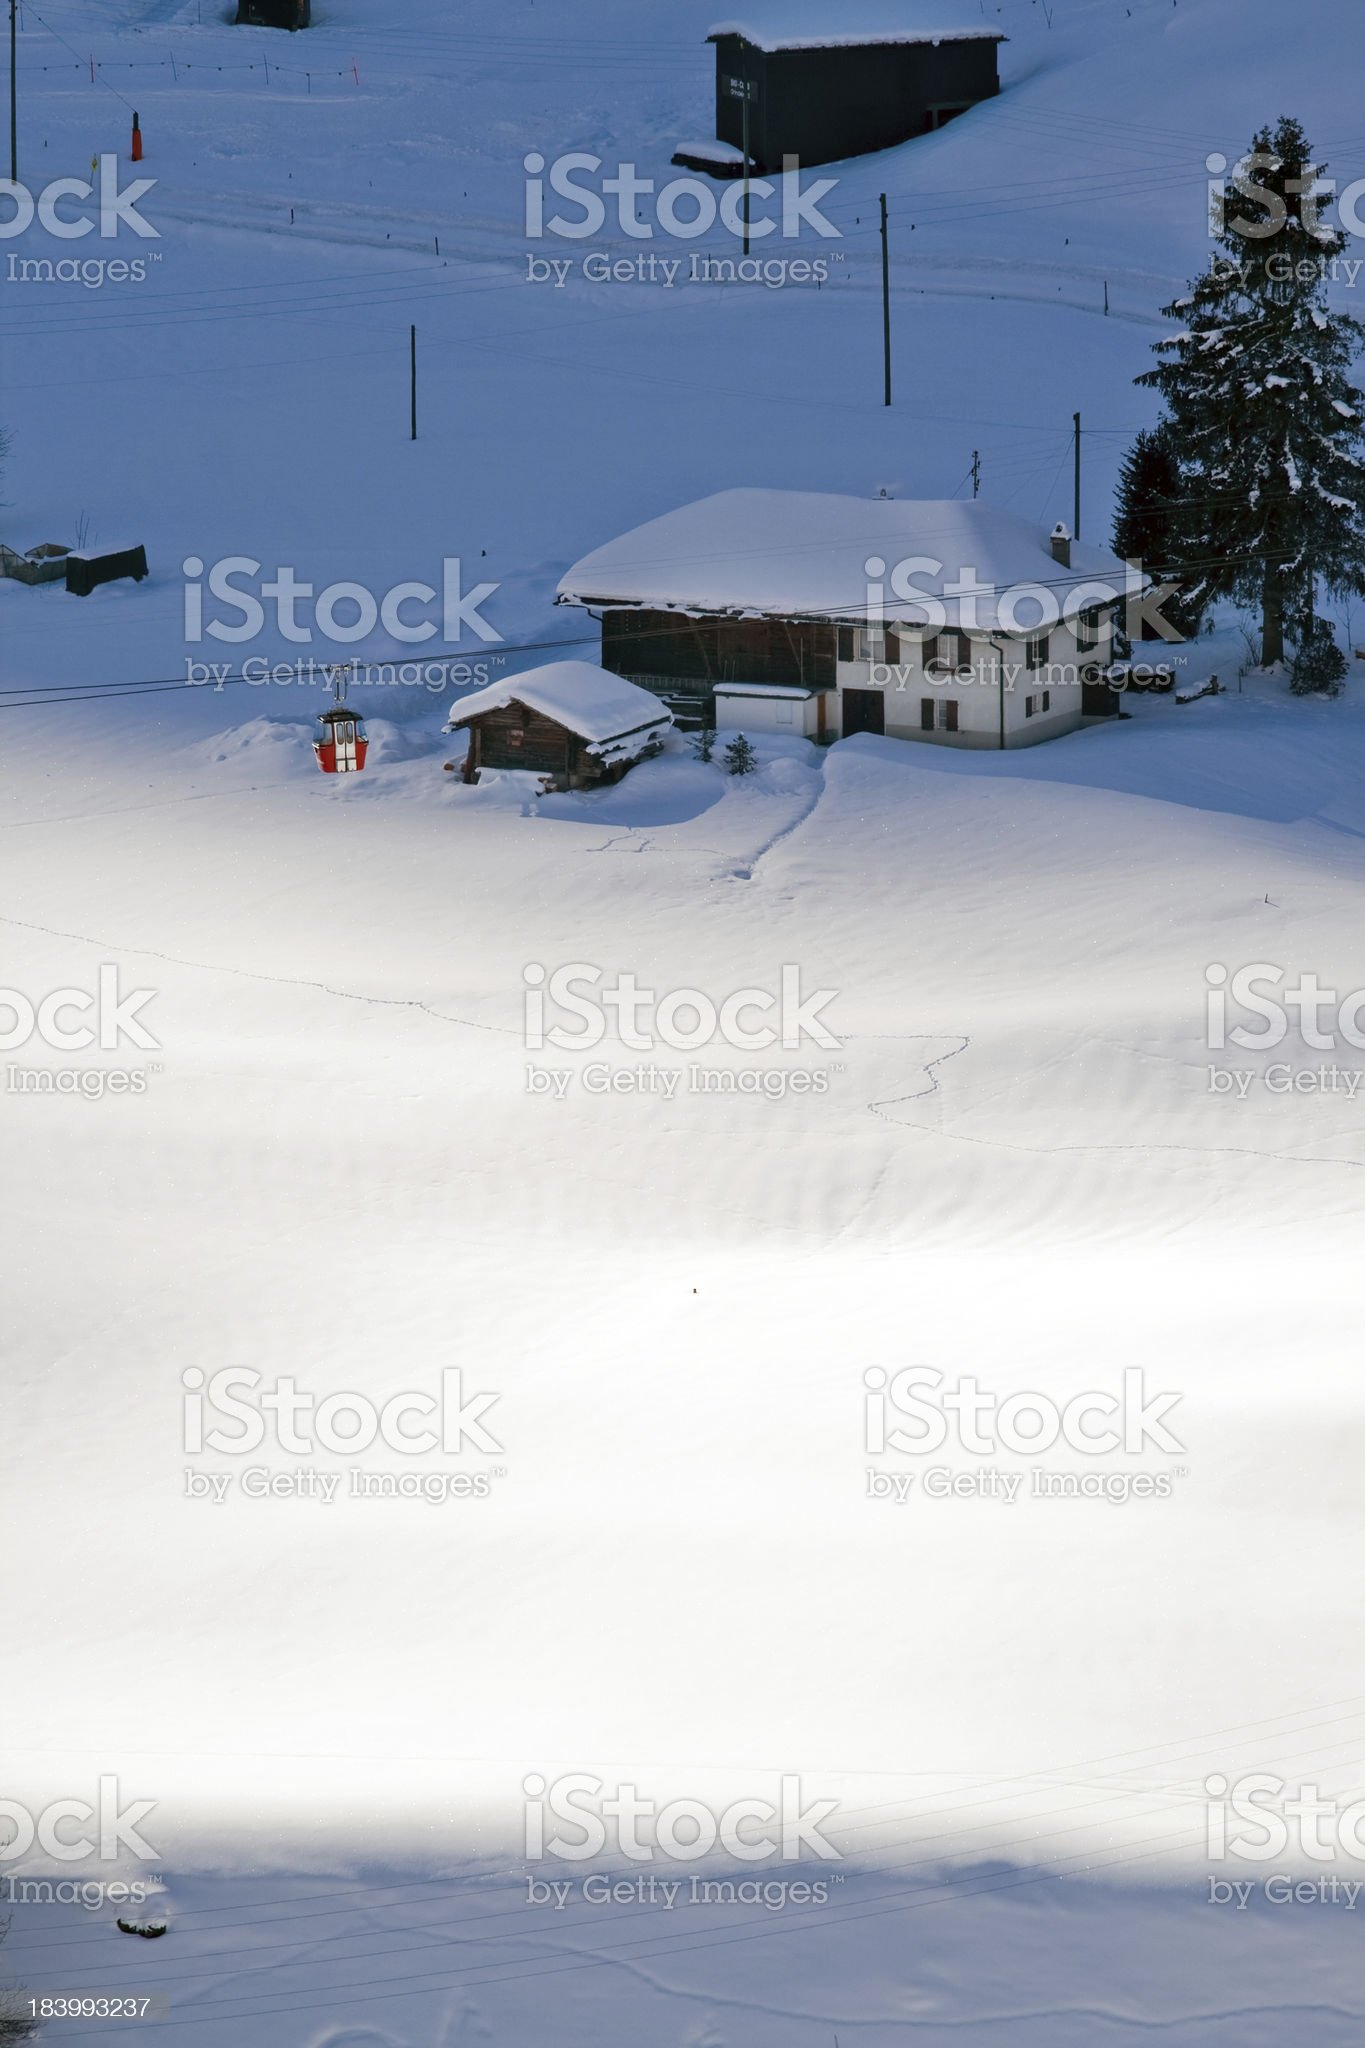 Aerial view of cableway and hotels in switzerland ski resort royalty-free stock photo